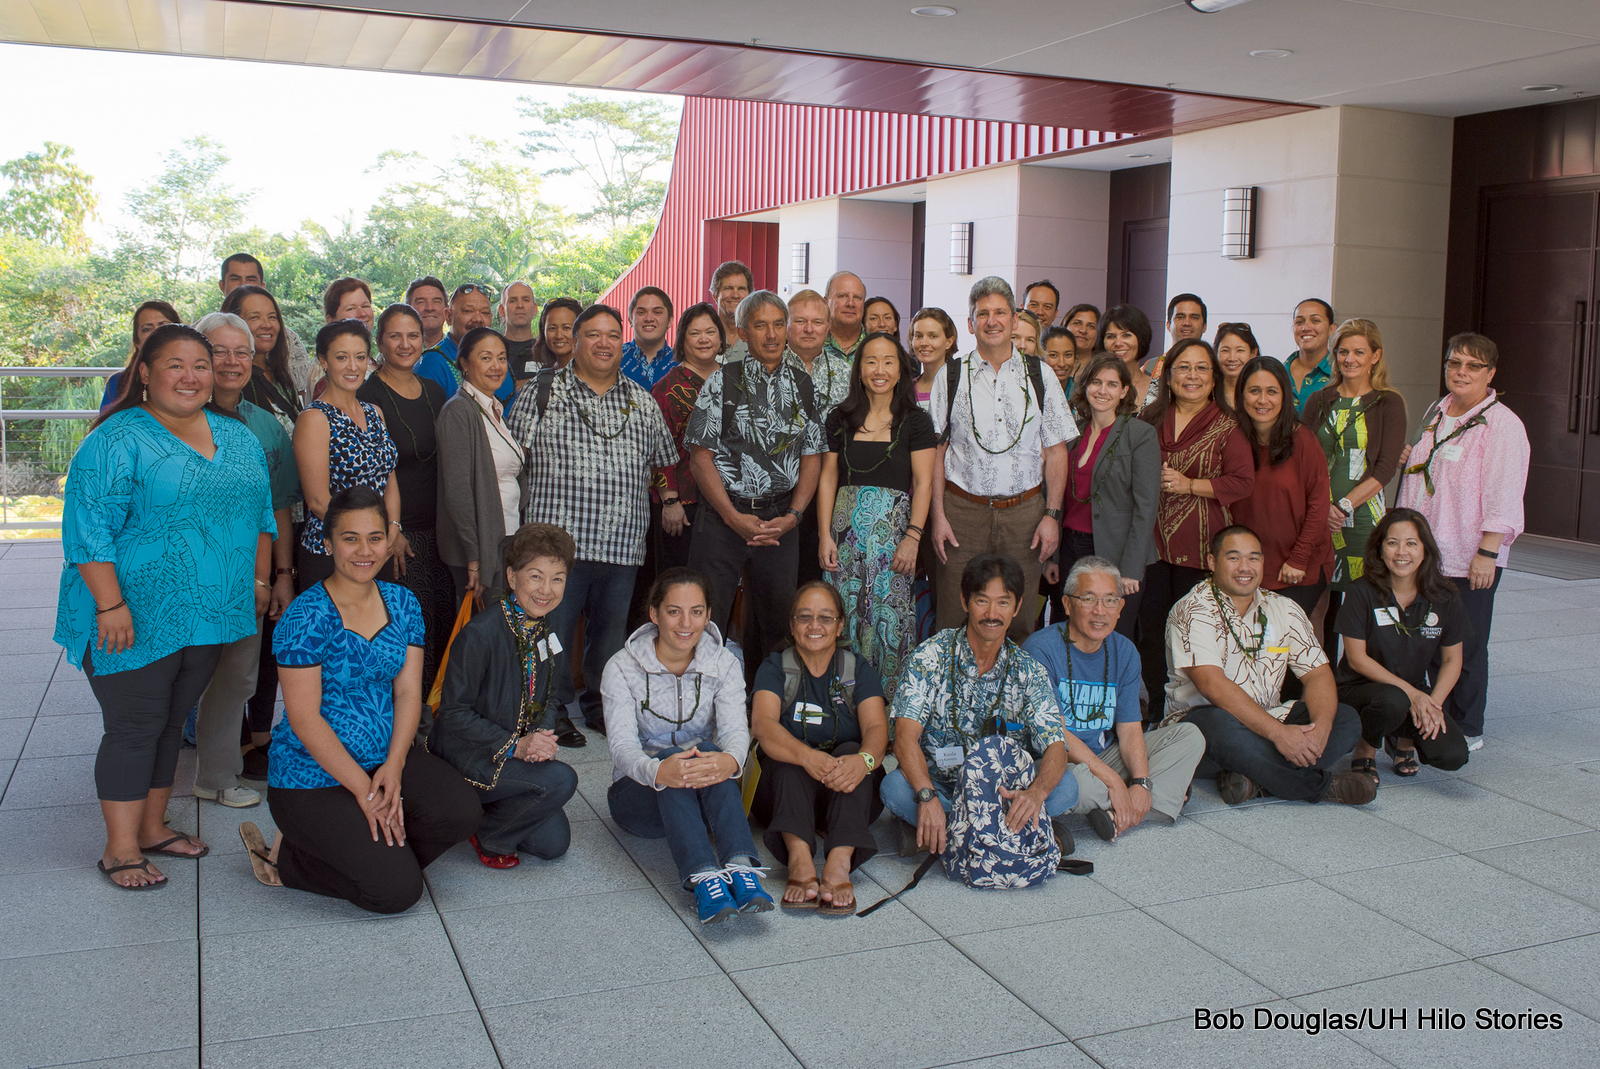 PHOTO ESSAY: Meeting held at UH Hilo to discuss integration of Mālama Honua Worldwide Voyage into UH curriculum